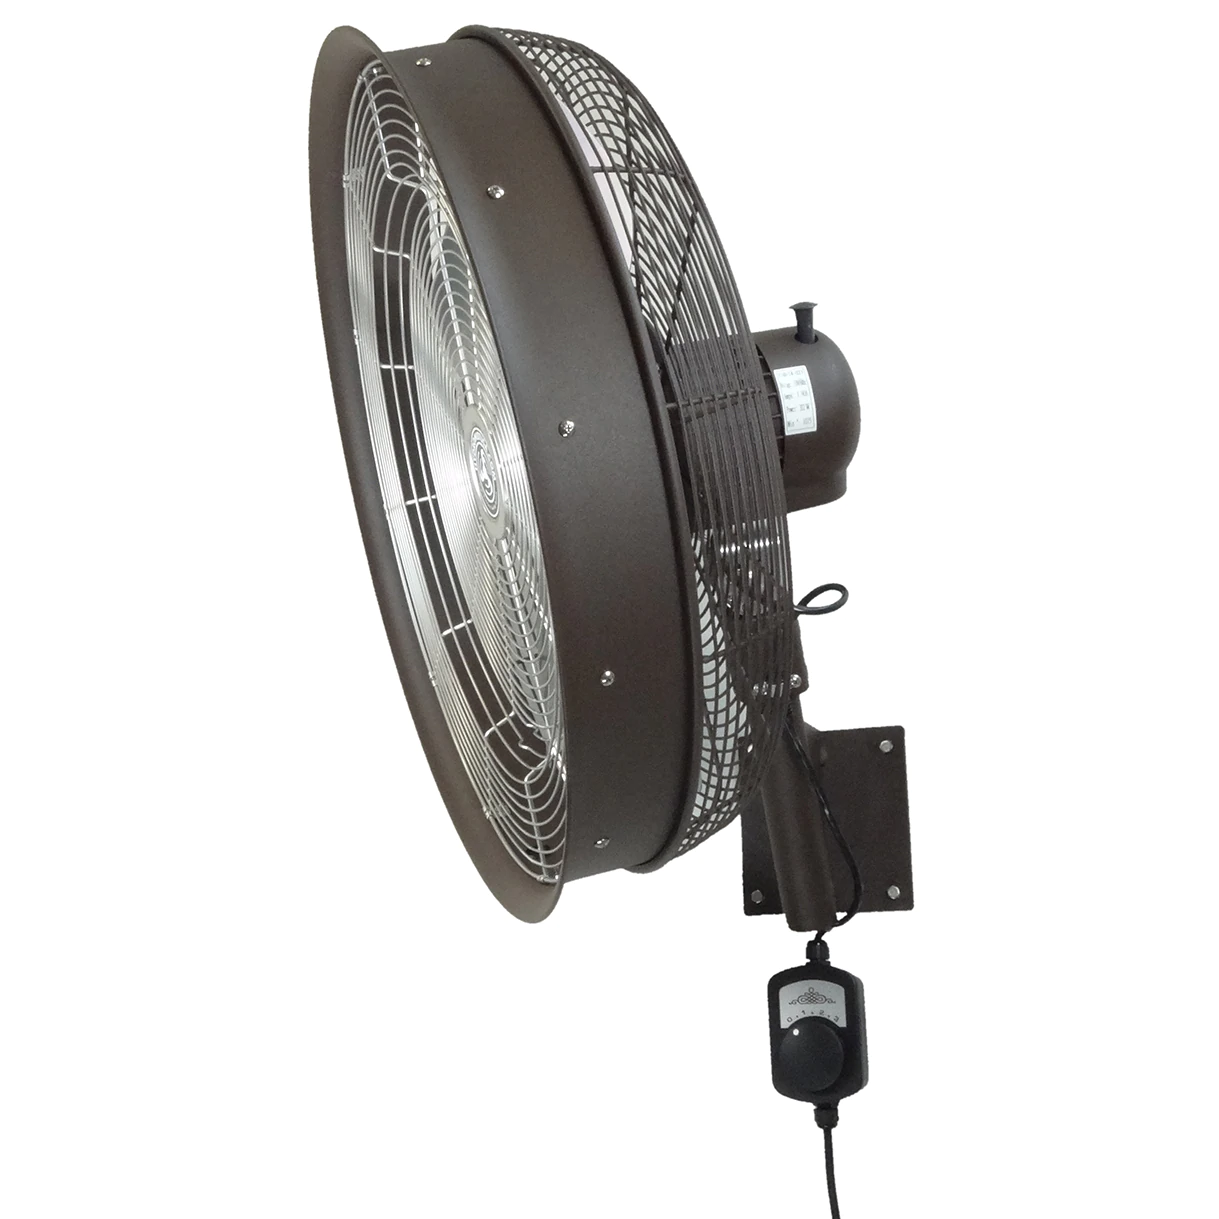 24 Inch Textured Brown Shrouded Outdoor Wall Mount Oscillating Fan 3-Speed Control on Cord